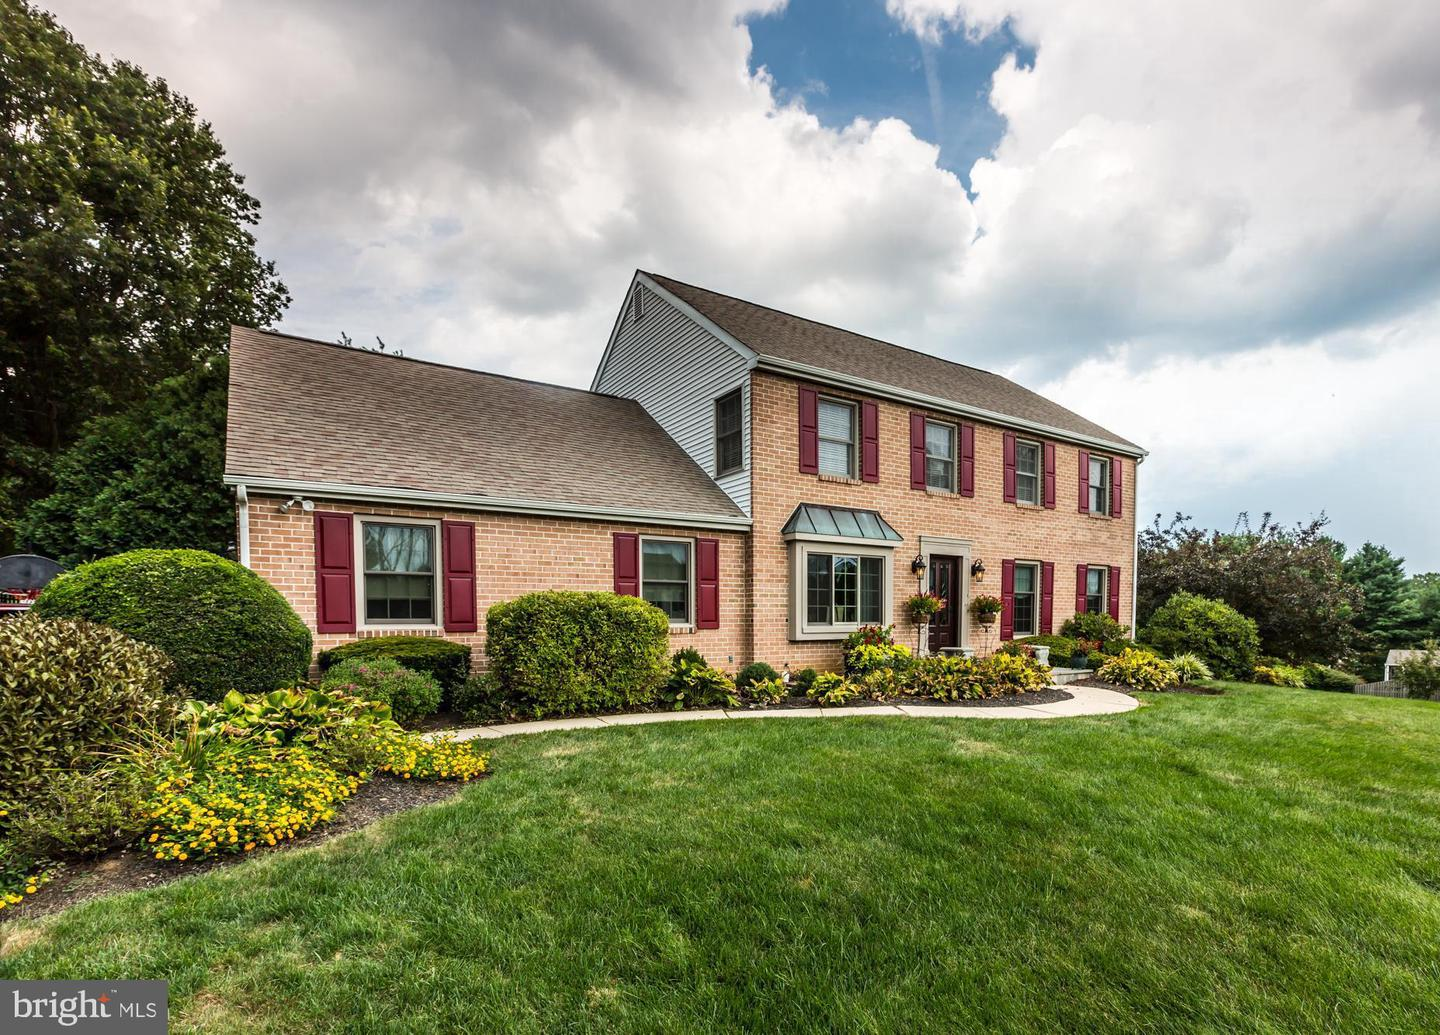 813 Plumtry Dr Drive West Chester, PA 19382